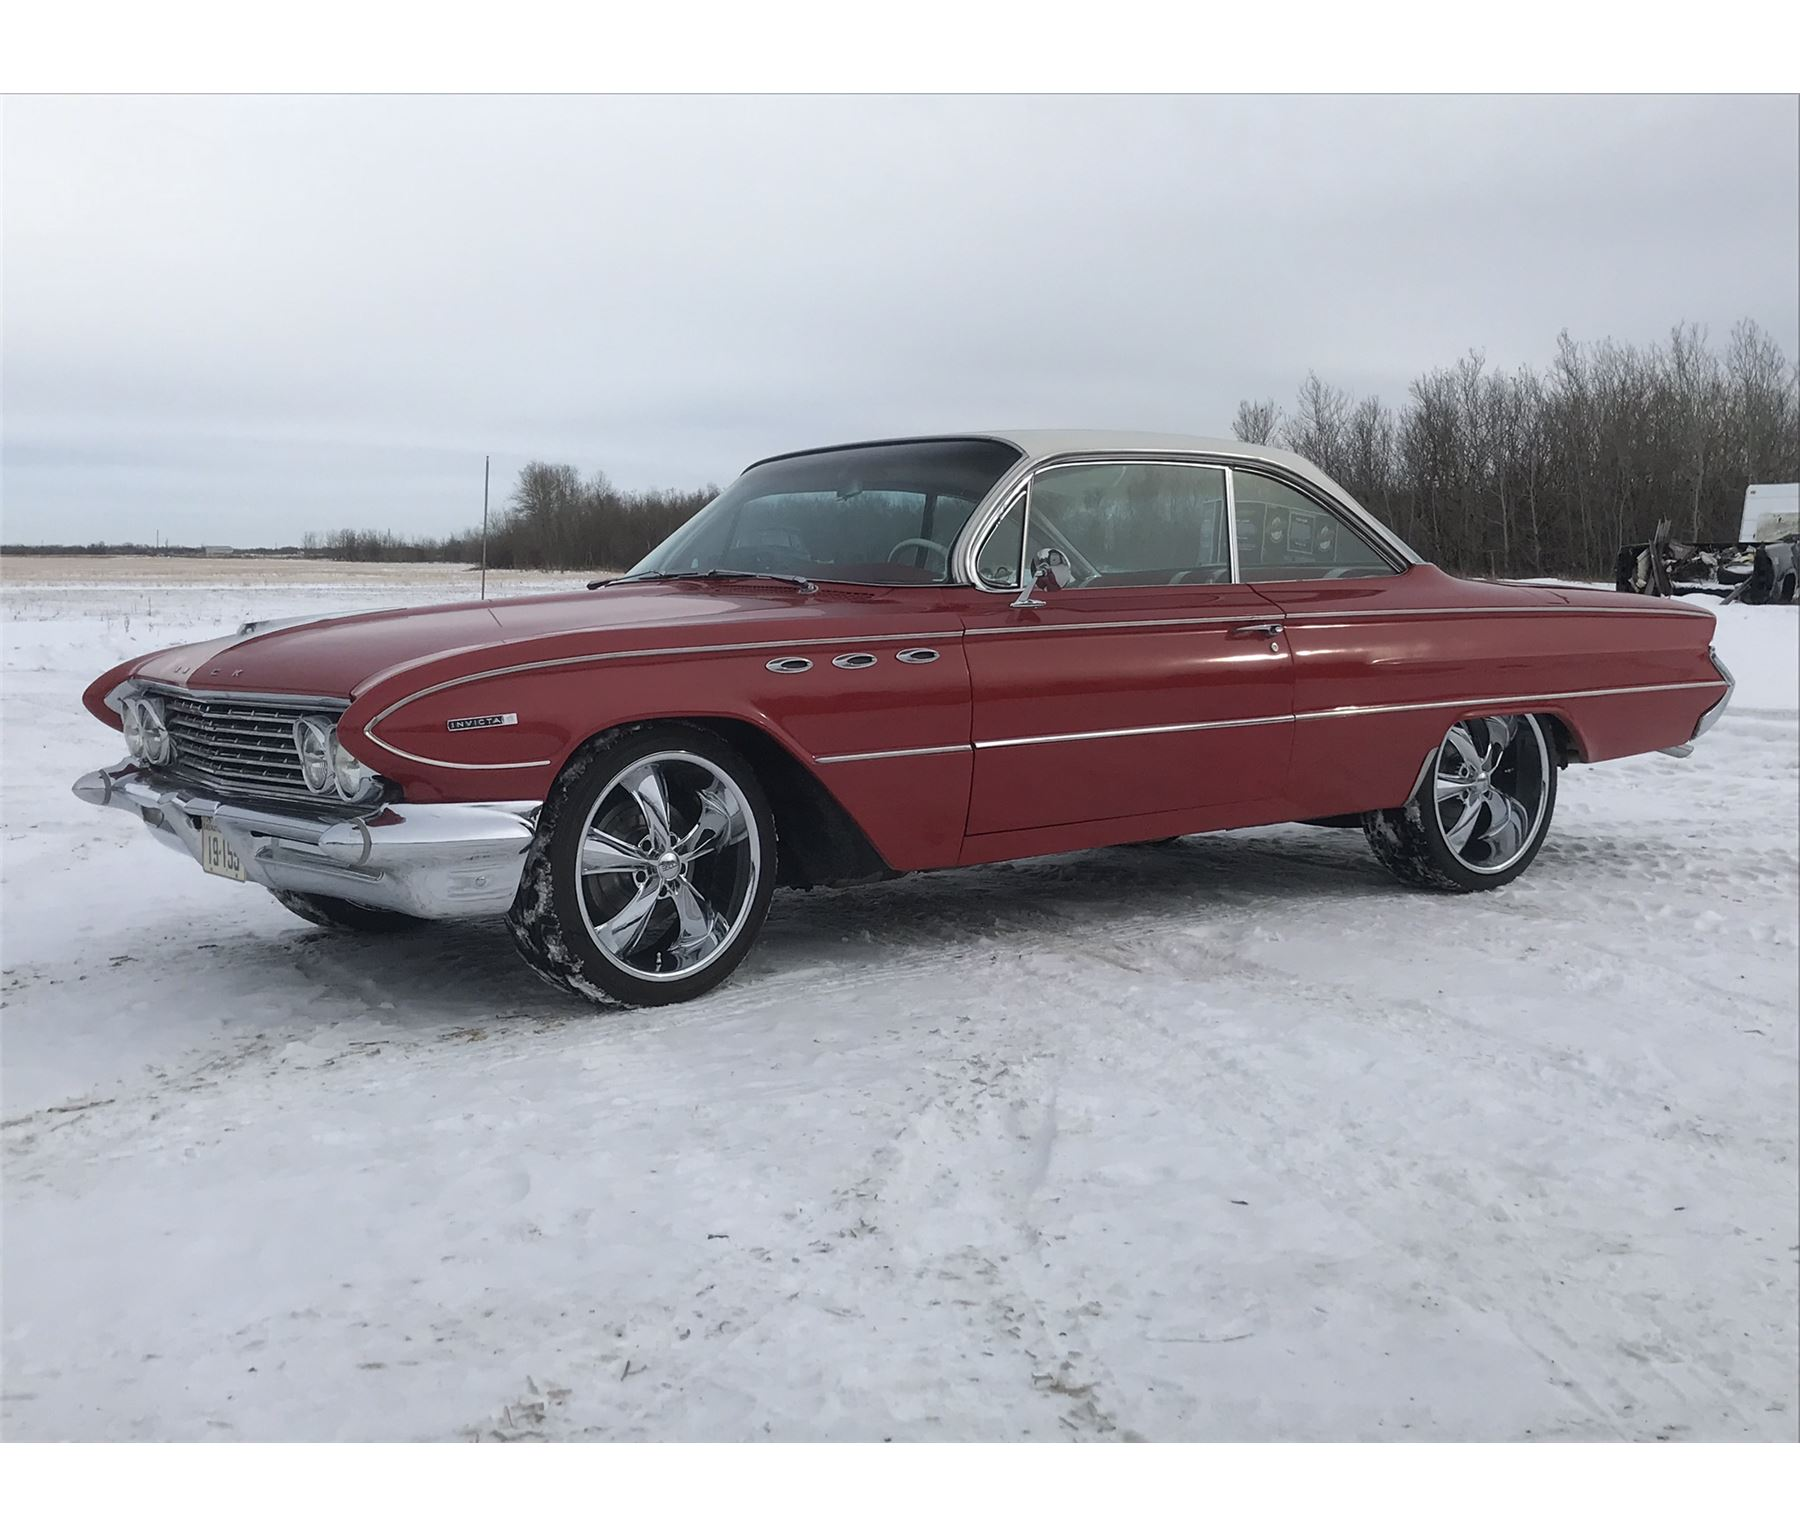 image 1 1961 buick invicta 2 door bubble top  [ 1800 x 1536 Pixel ]